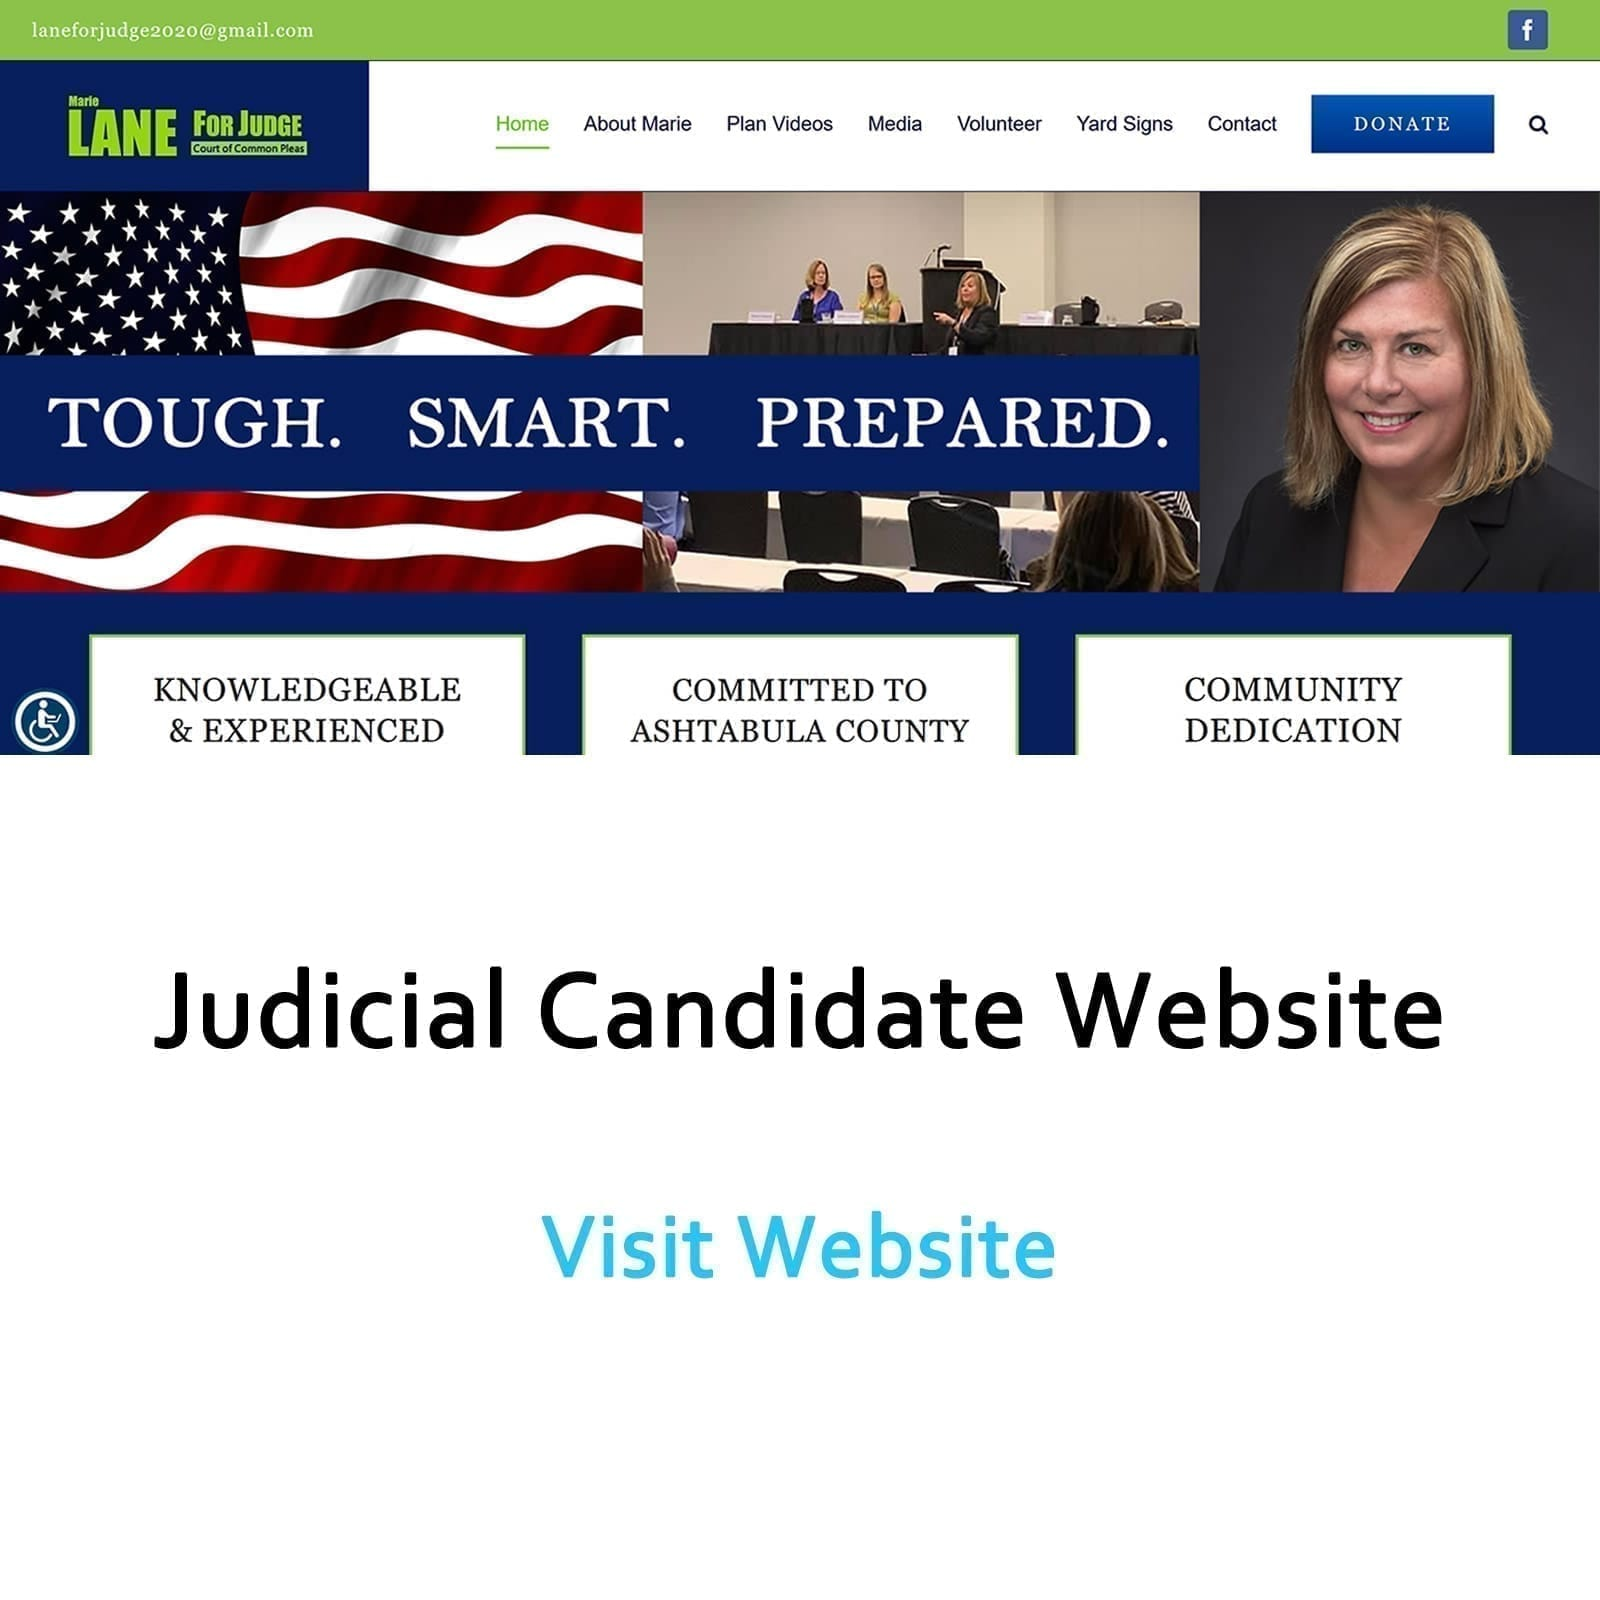 Image of Lane for Judge Website